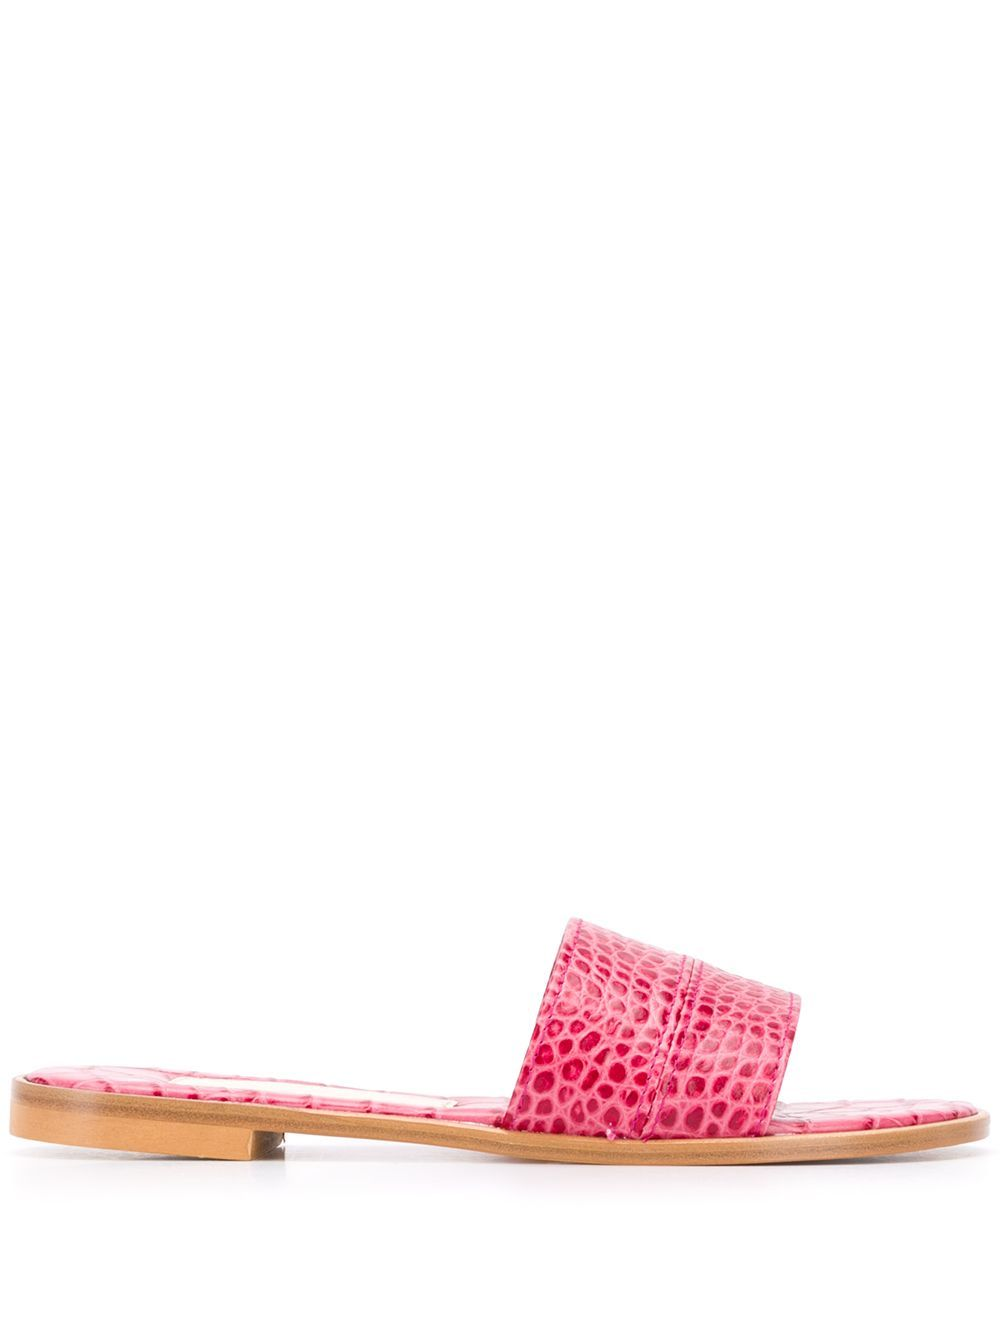 Pink leather crocodile embossed sandals from Avec Modération featuring an open toe, a branded insole and a flat sole.